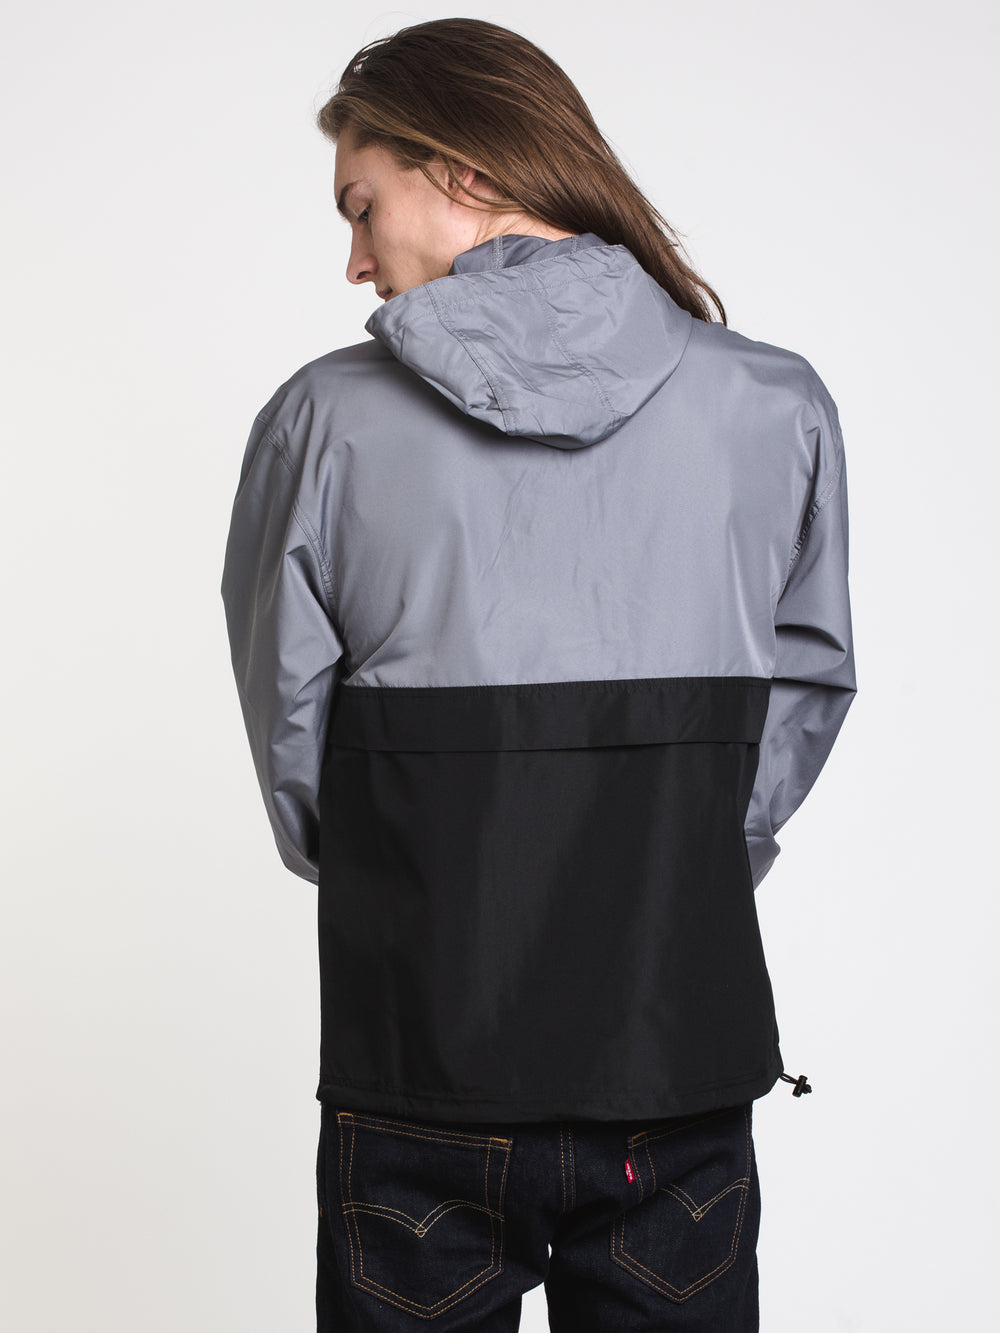 MENS PACKABLE COLOURBLOCK JACKET - BLK/GRY